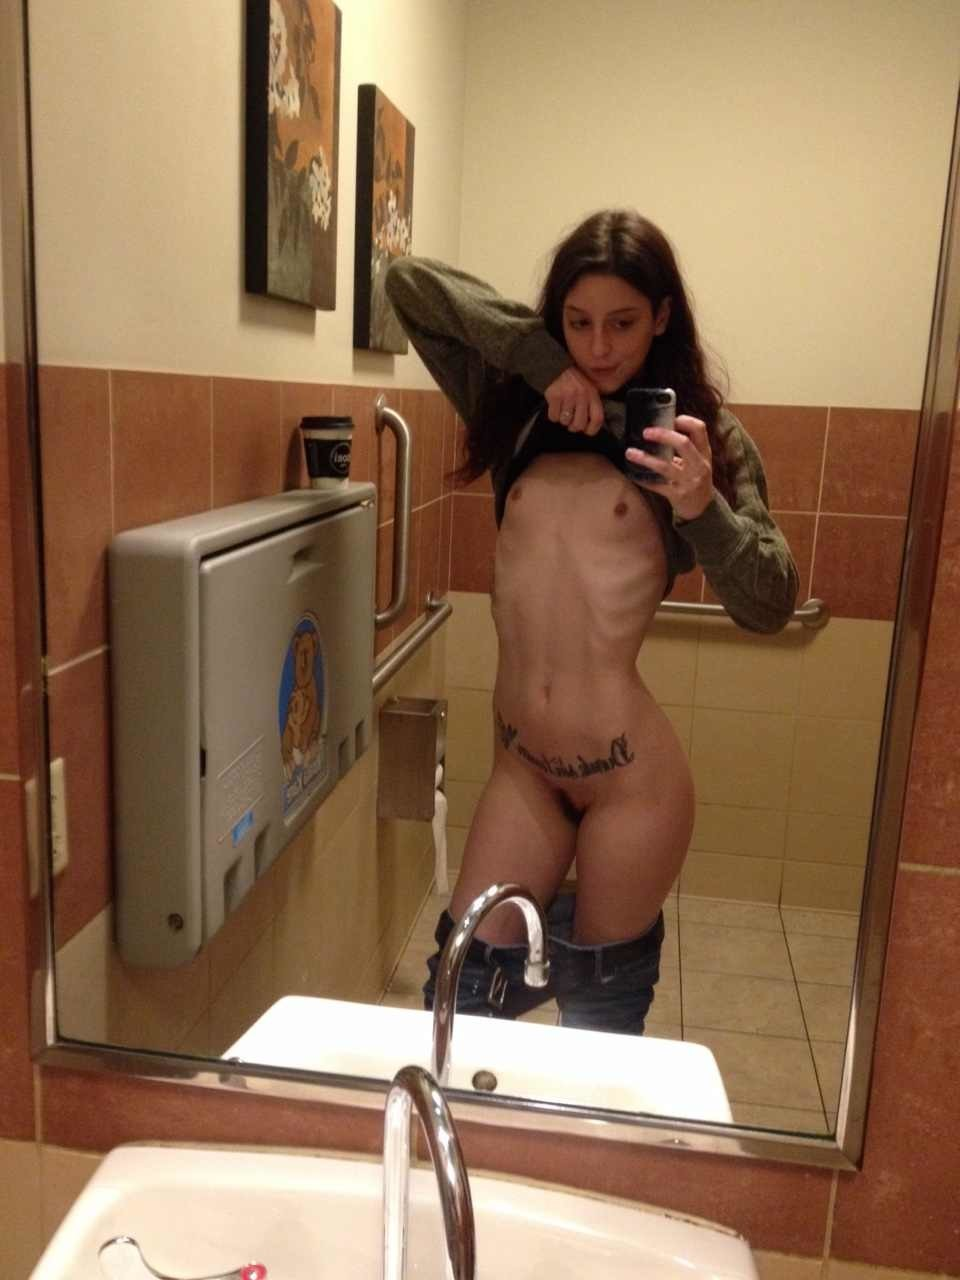 realitykings anissa kate comxxxnx french com jpg Amateur Teen Babe Girl Young Horny Hot Sexy College Dating Smalltits Tits Sexdating Brunette Petite Slut Skinny Tinytits